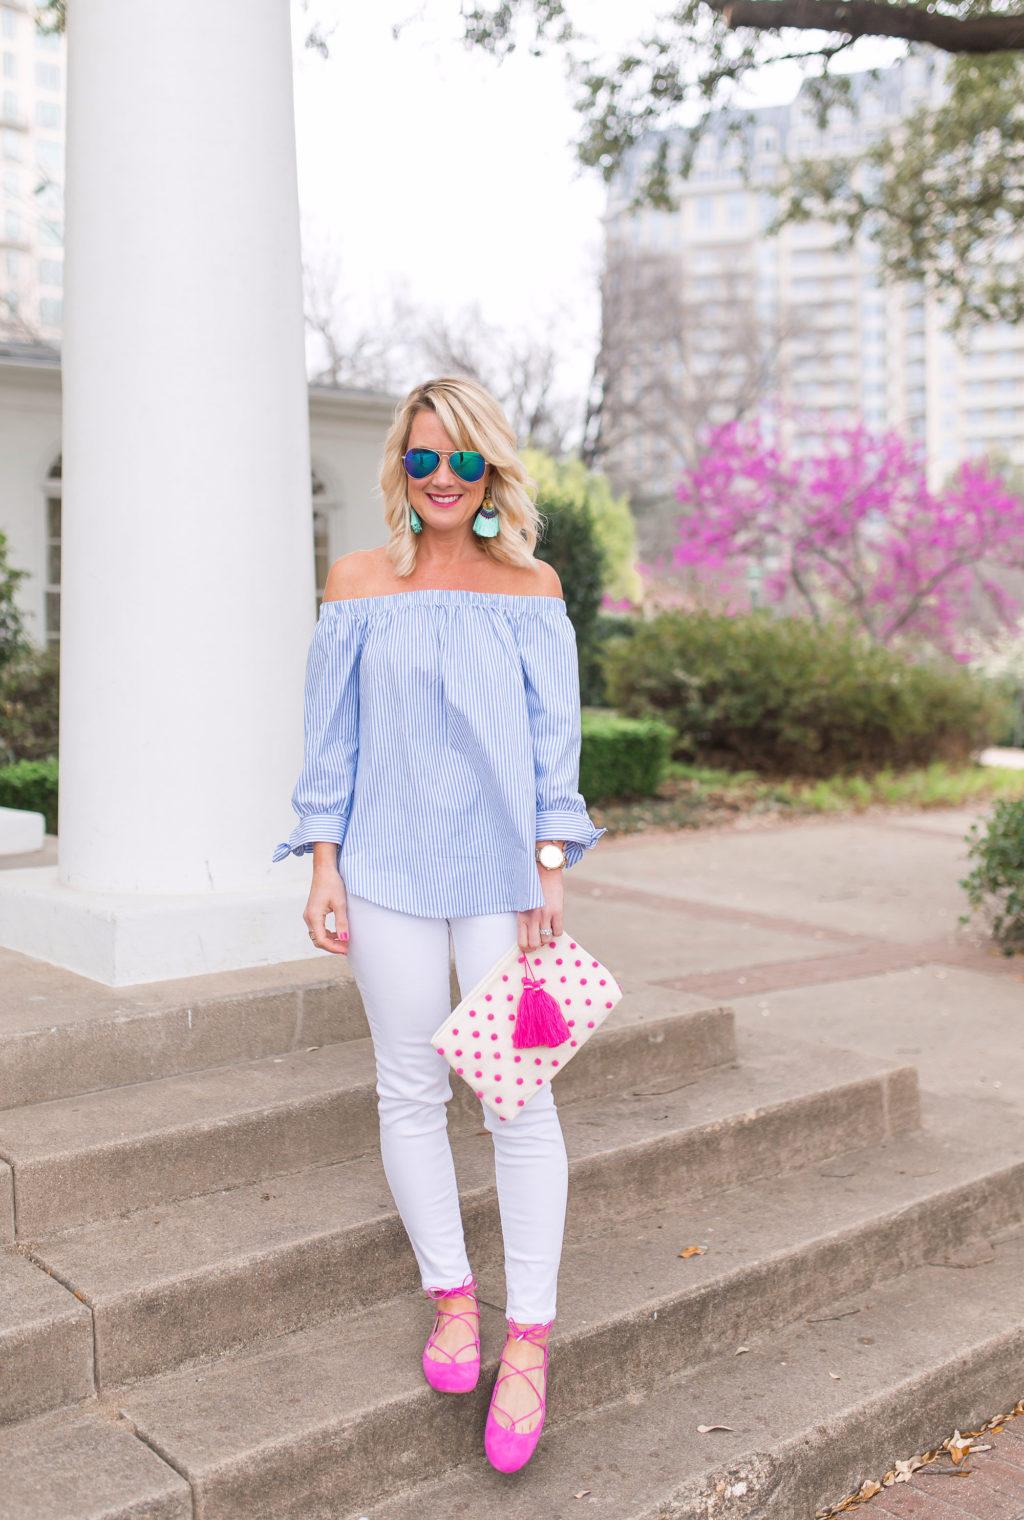 white jeans outfit at arlington hall dallas